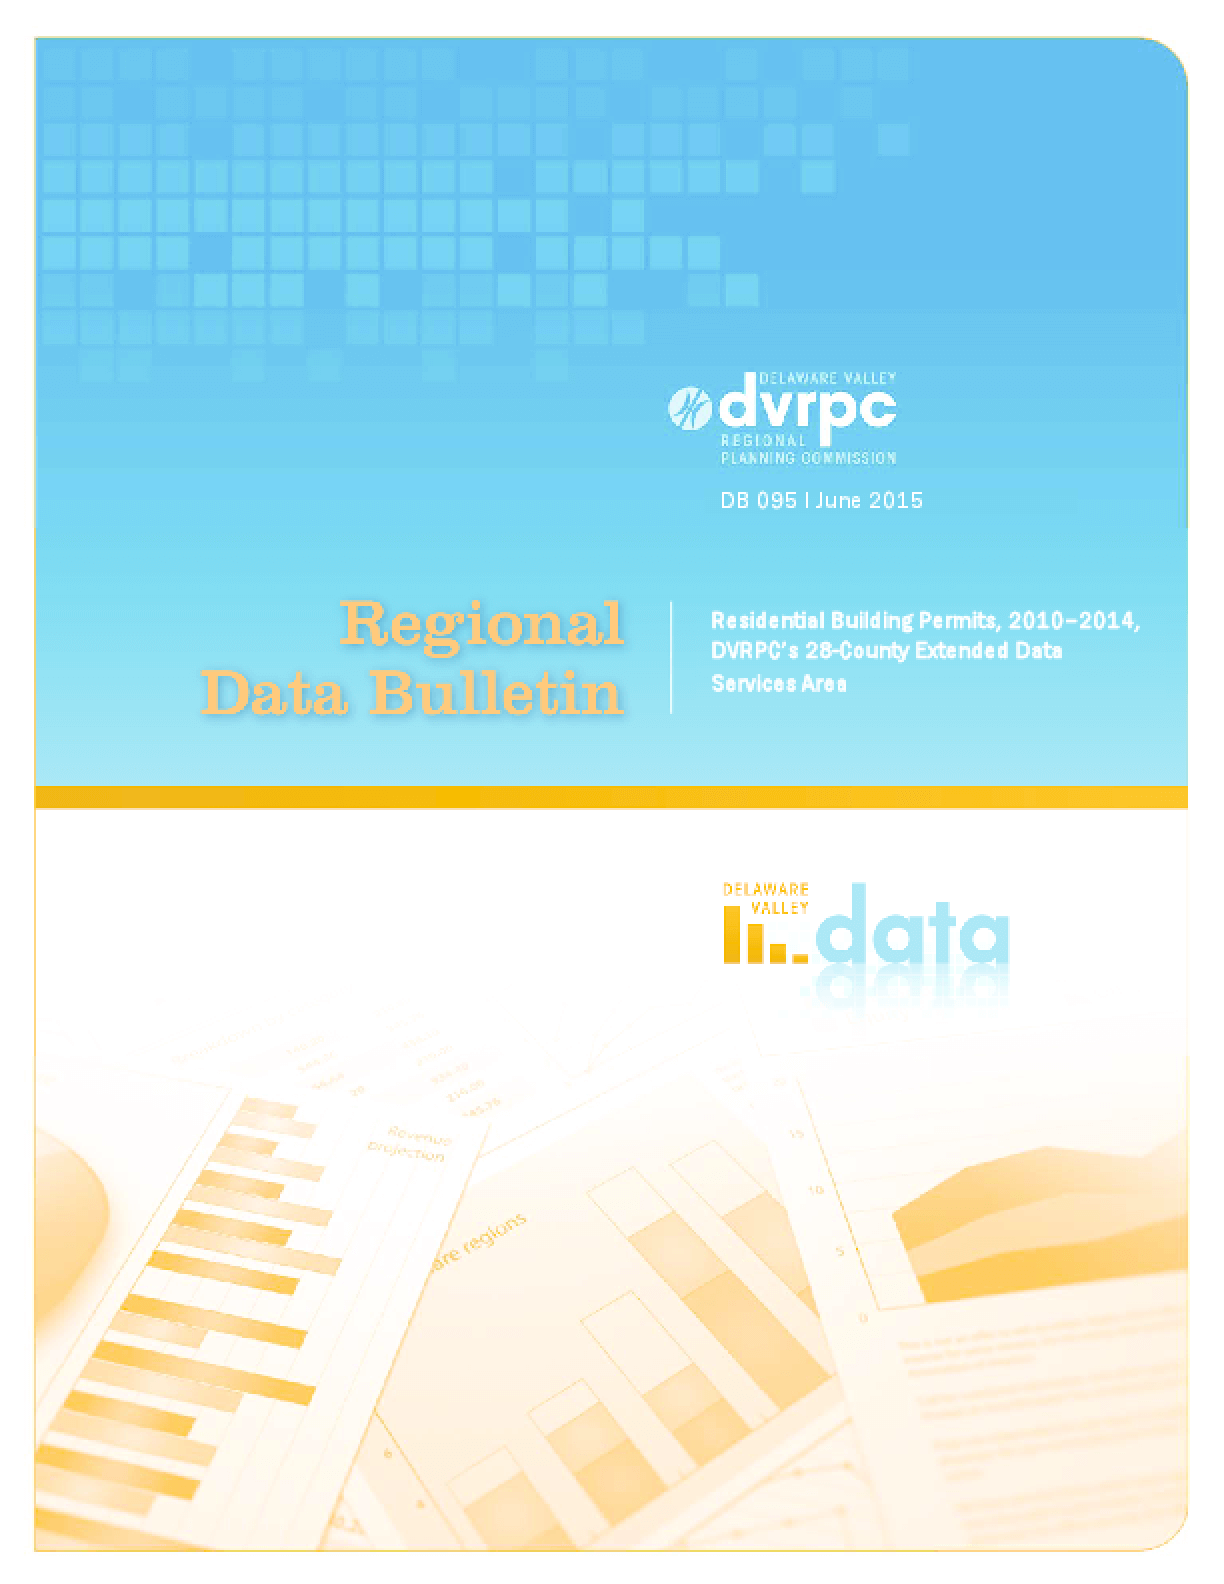 Regional Data Bulletin # 095: Residential Building Permits, 2010 -- 2014 DVRPC's 28-County Extended Data Services Area